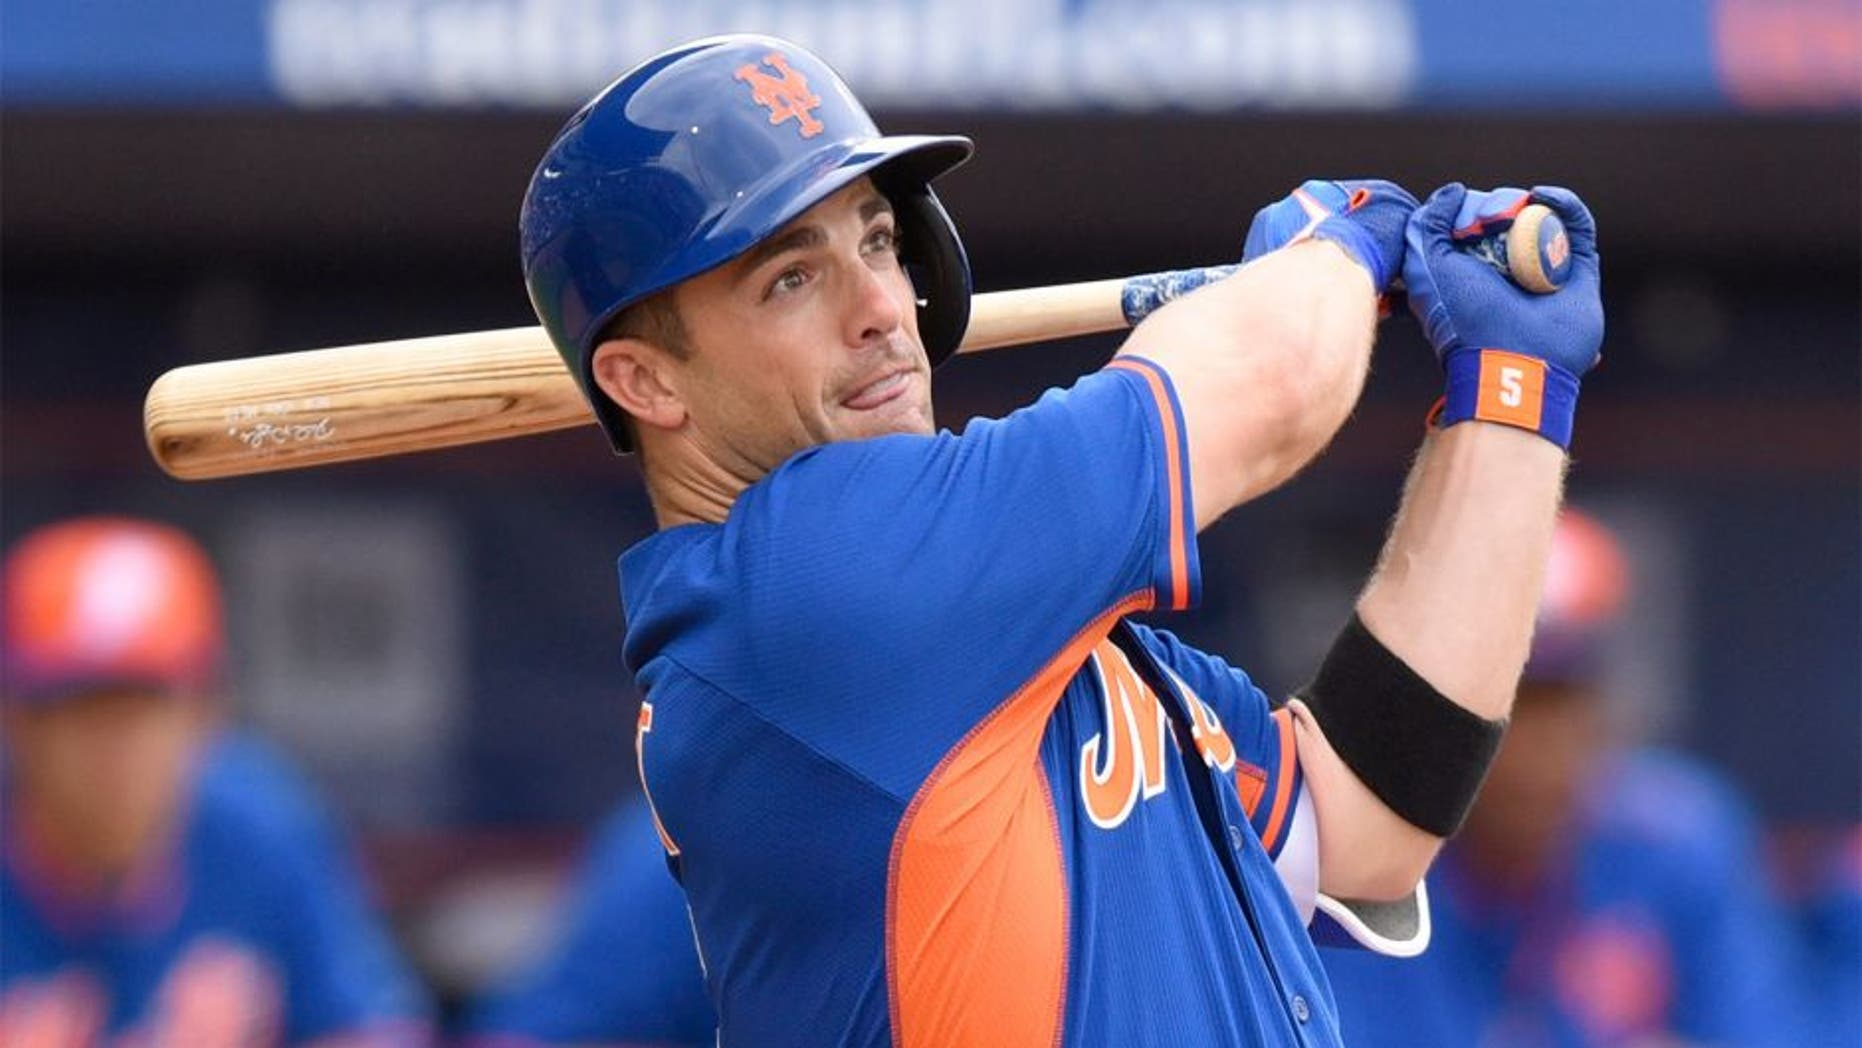 Mar 7, 2015; Port St. Lucie, FL, USA; New York Mets third baseman David Wright (5) hits a double against the Atlanta Braves during the spring training baseball game at Tradition Field. Mandatory Credit: Brad Barr-USA TODAY Sports